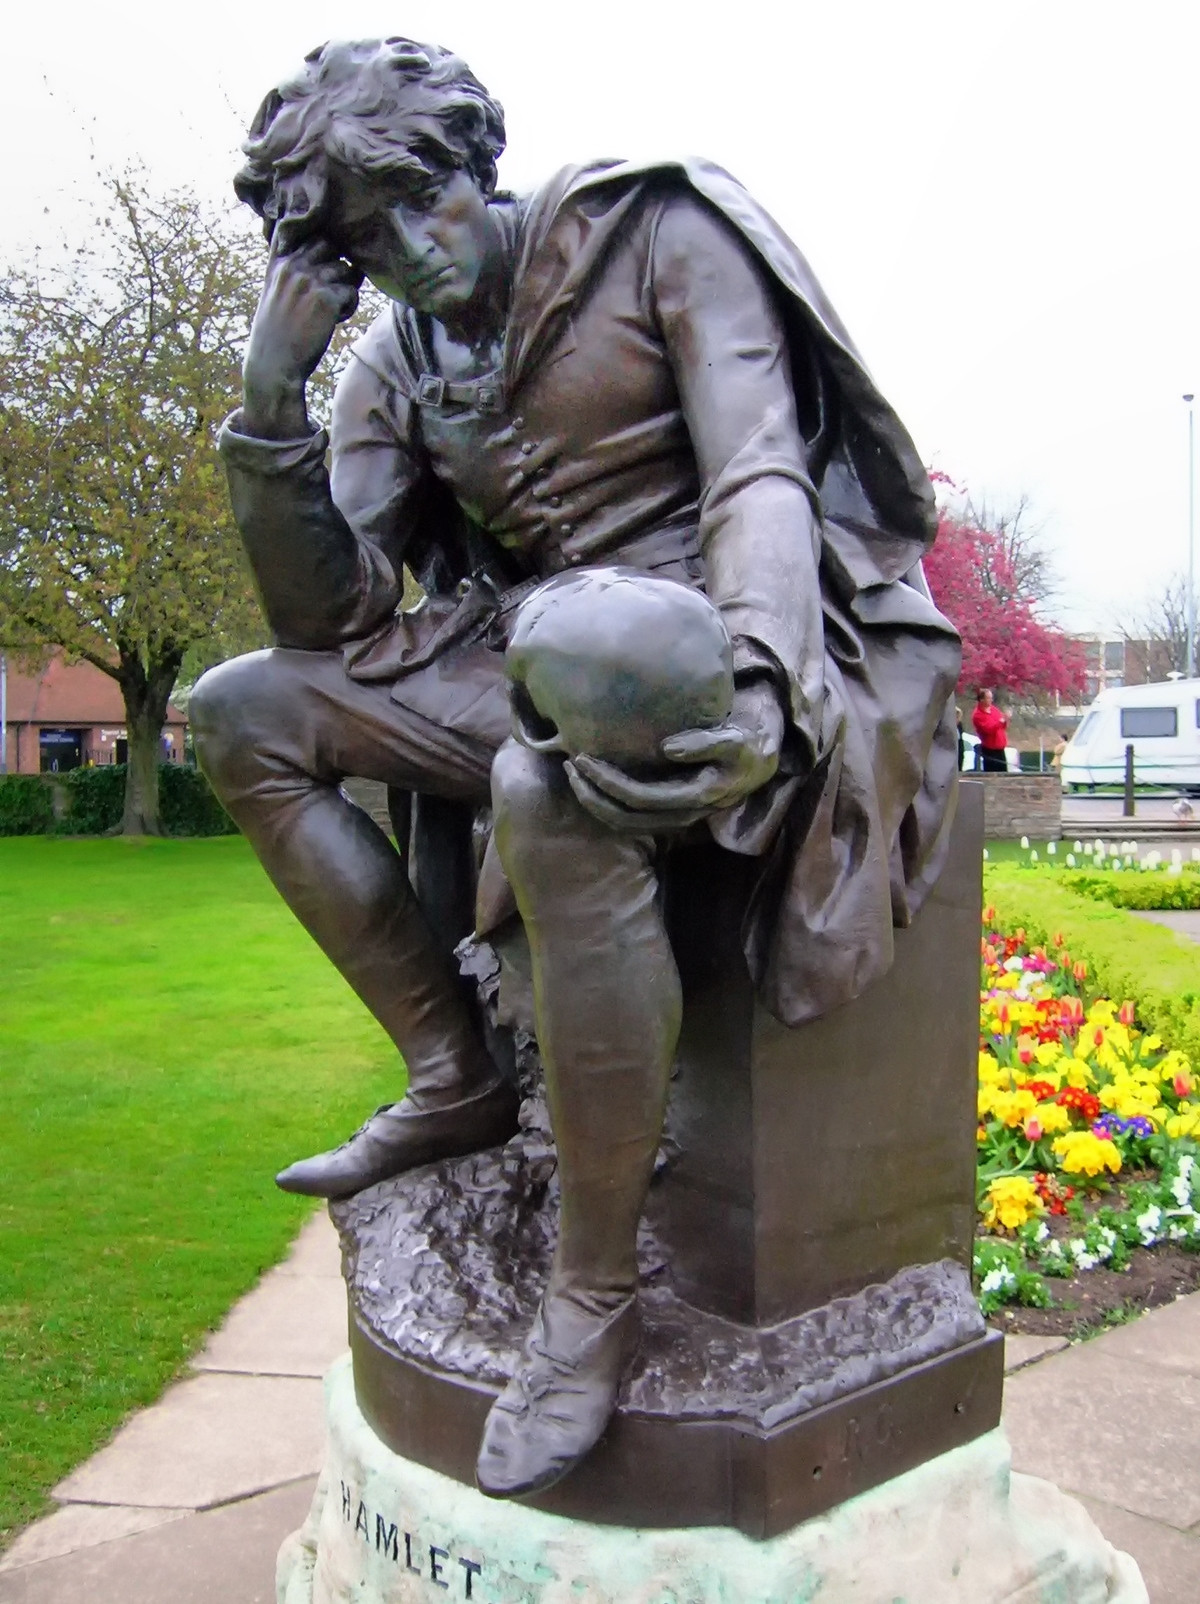 Stataue of Shakespeare's Hamlet, Stratford-upon-Avon, by Lord Ronald Gower